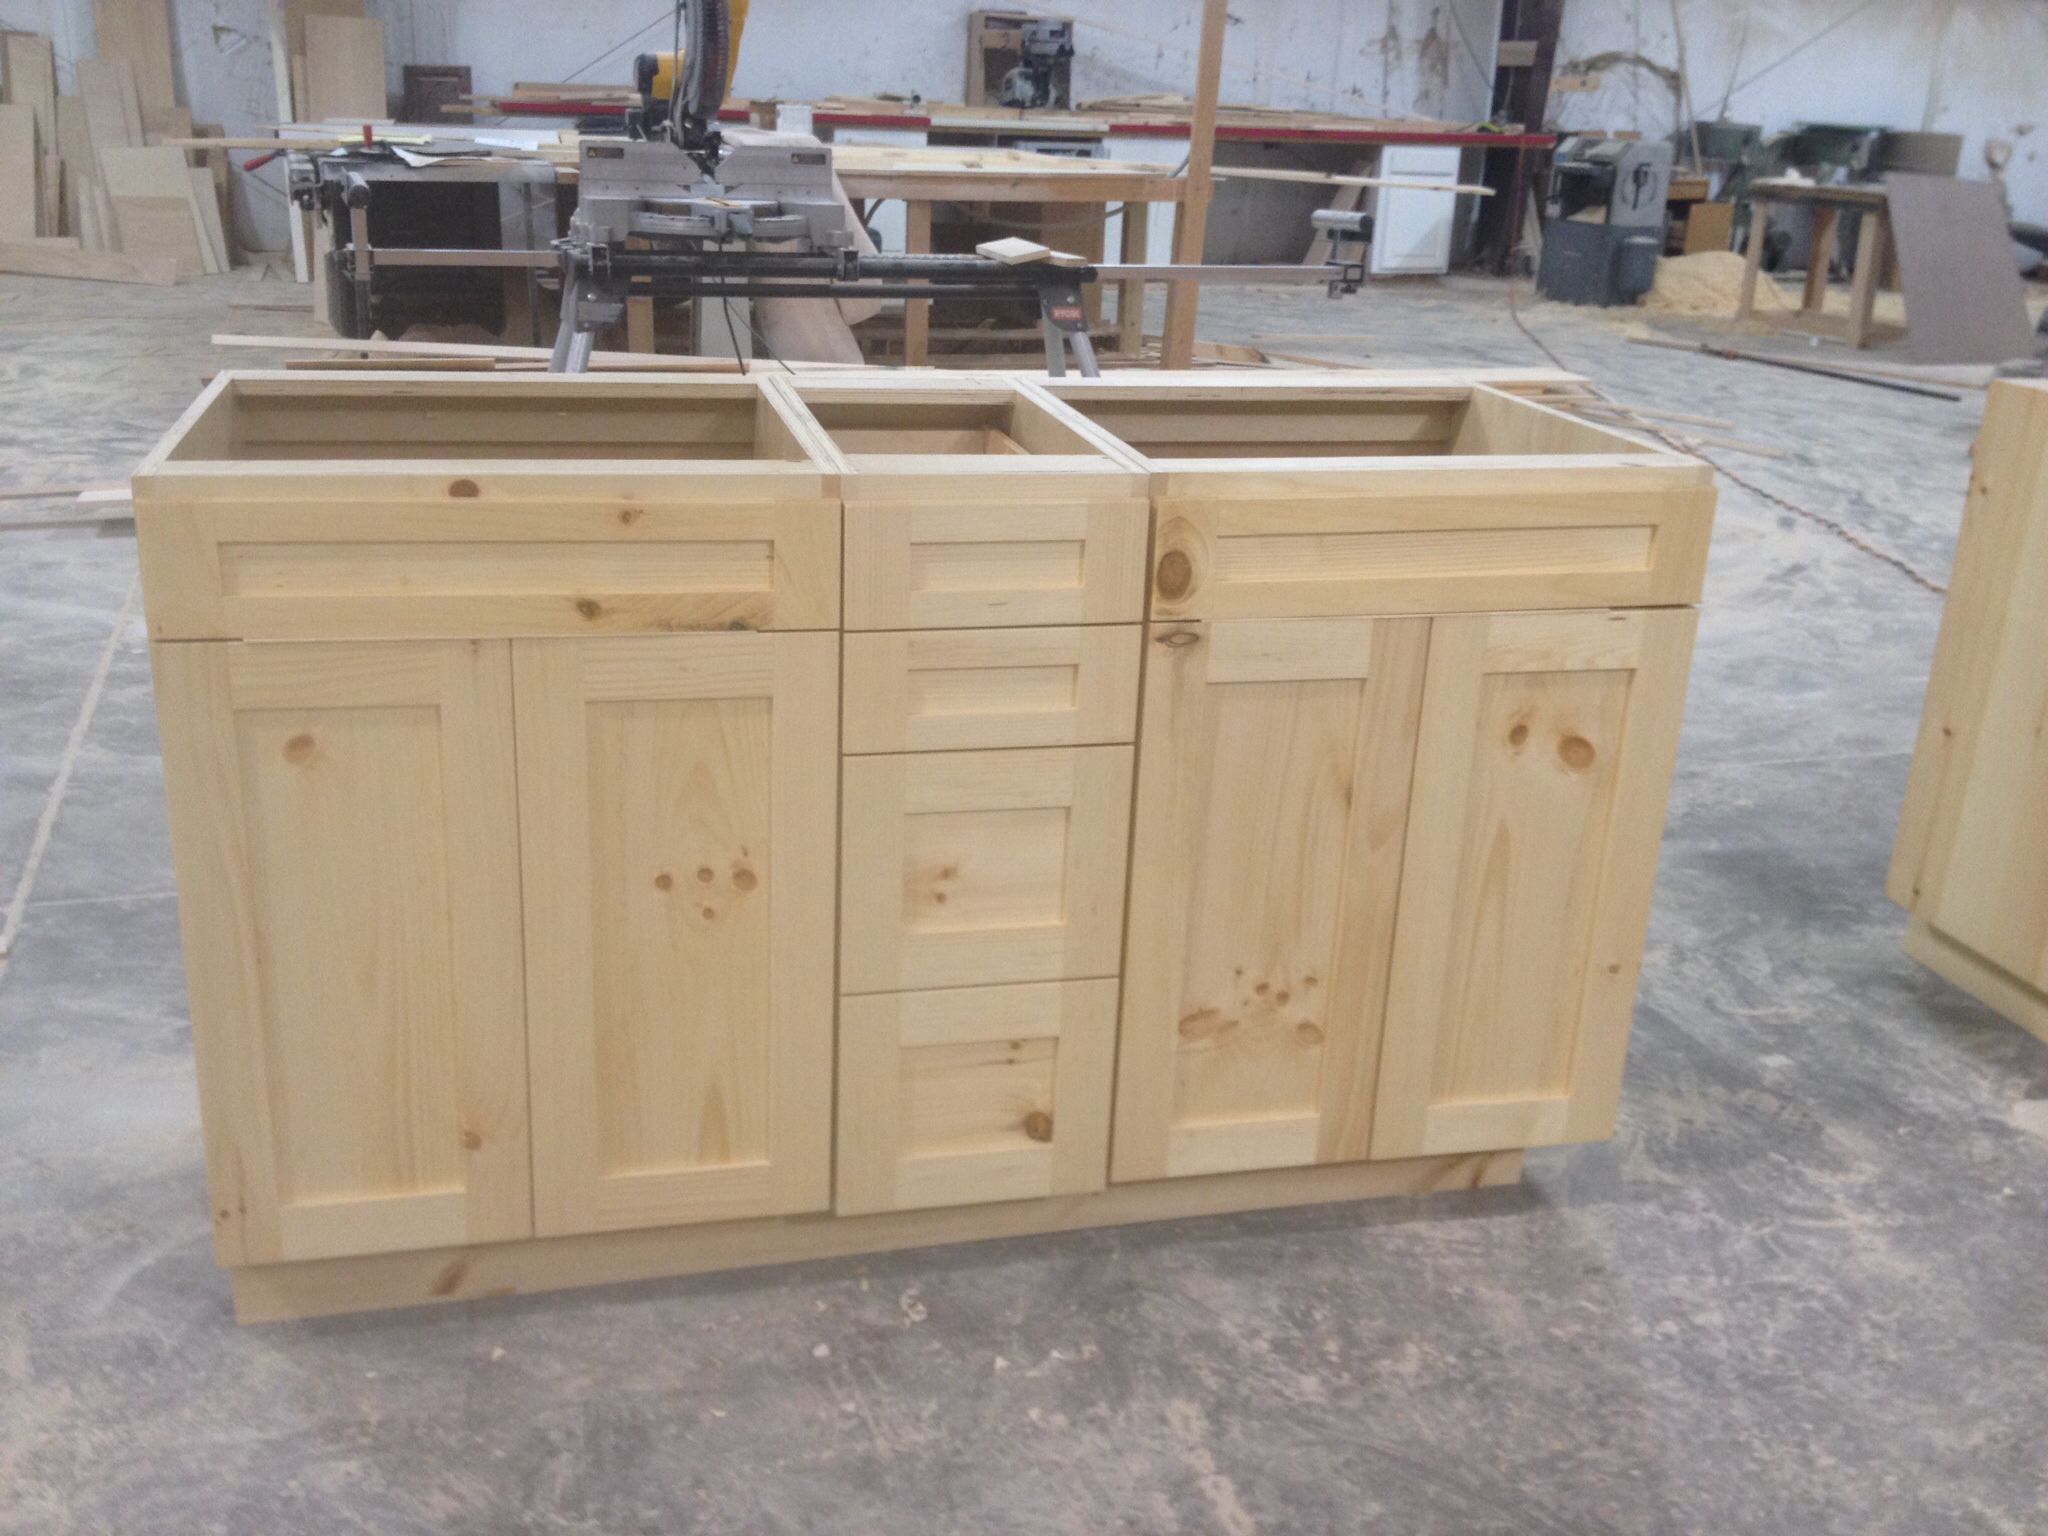 knotty pine vanities frameless with finish turned out beautiful ga custom cabinets and